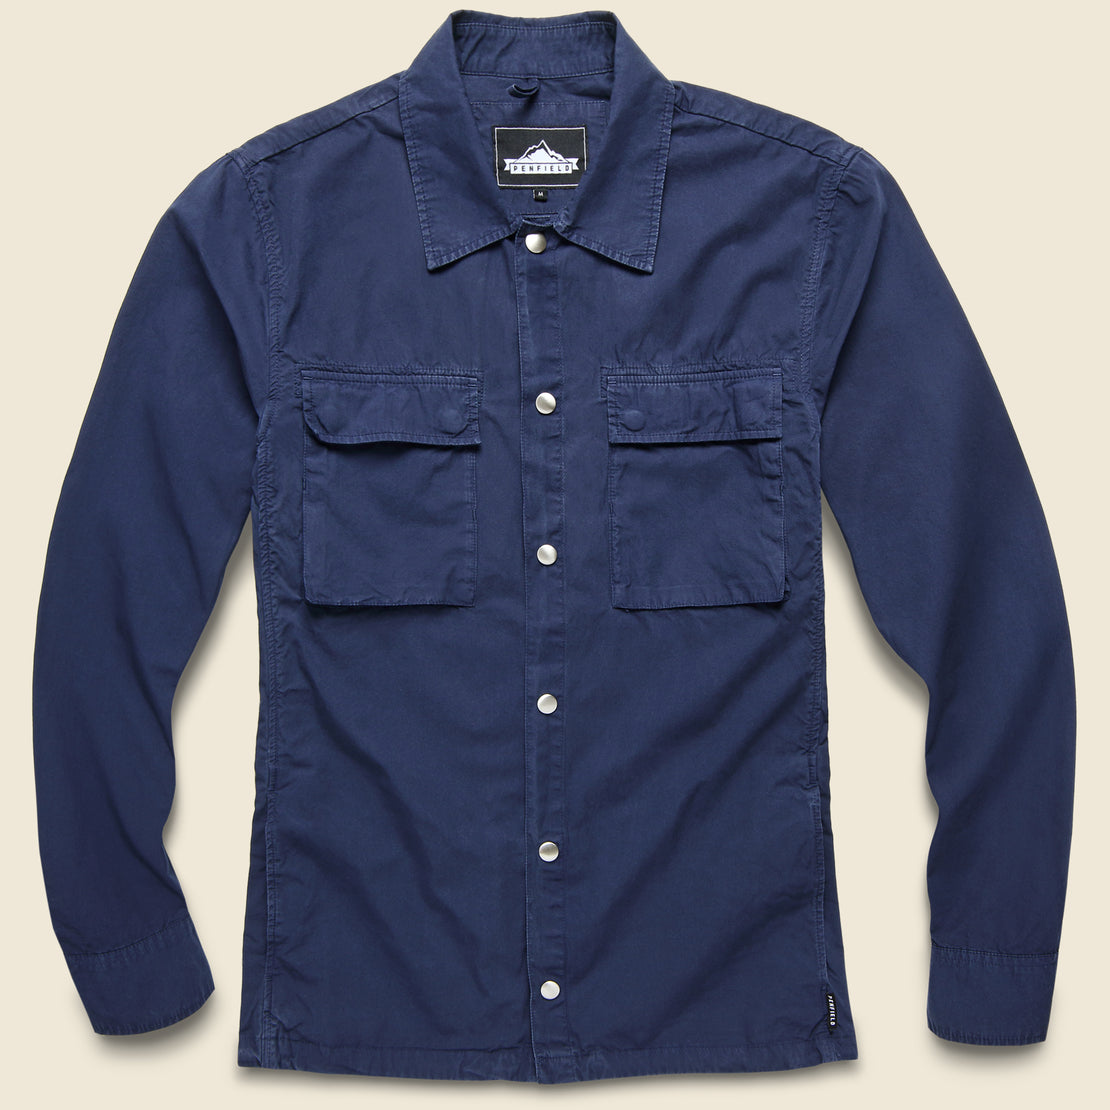 Penfield Oakledge Overshirt - Peacoat